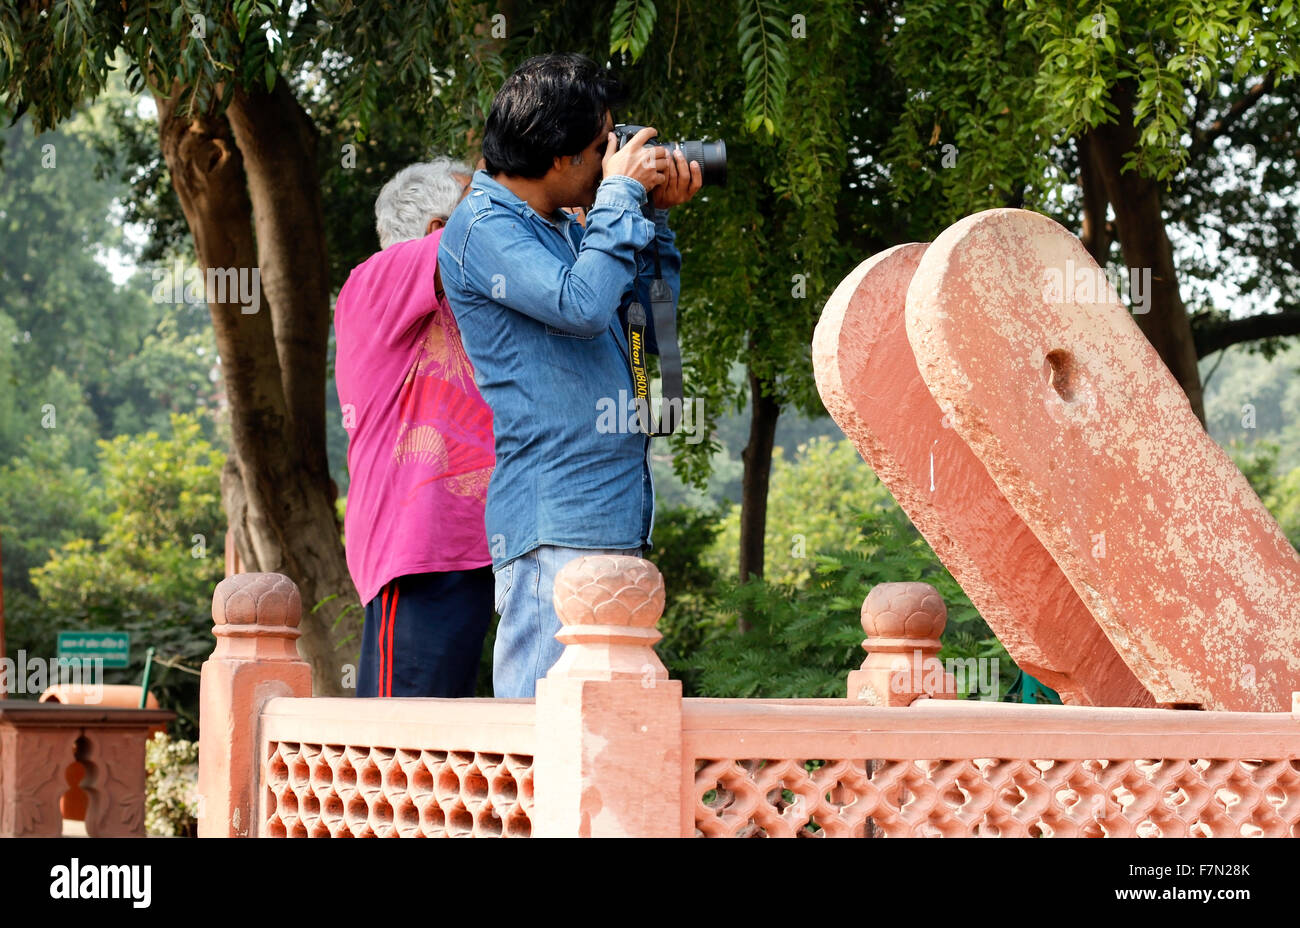 Two men capturing Taj near ancient Well - Stock Image